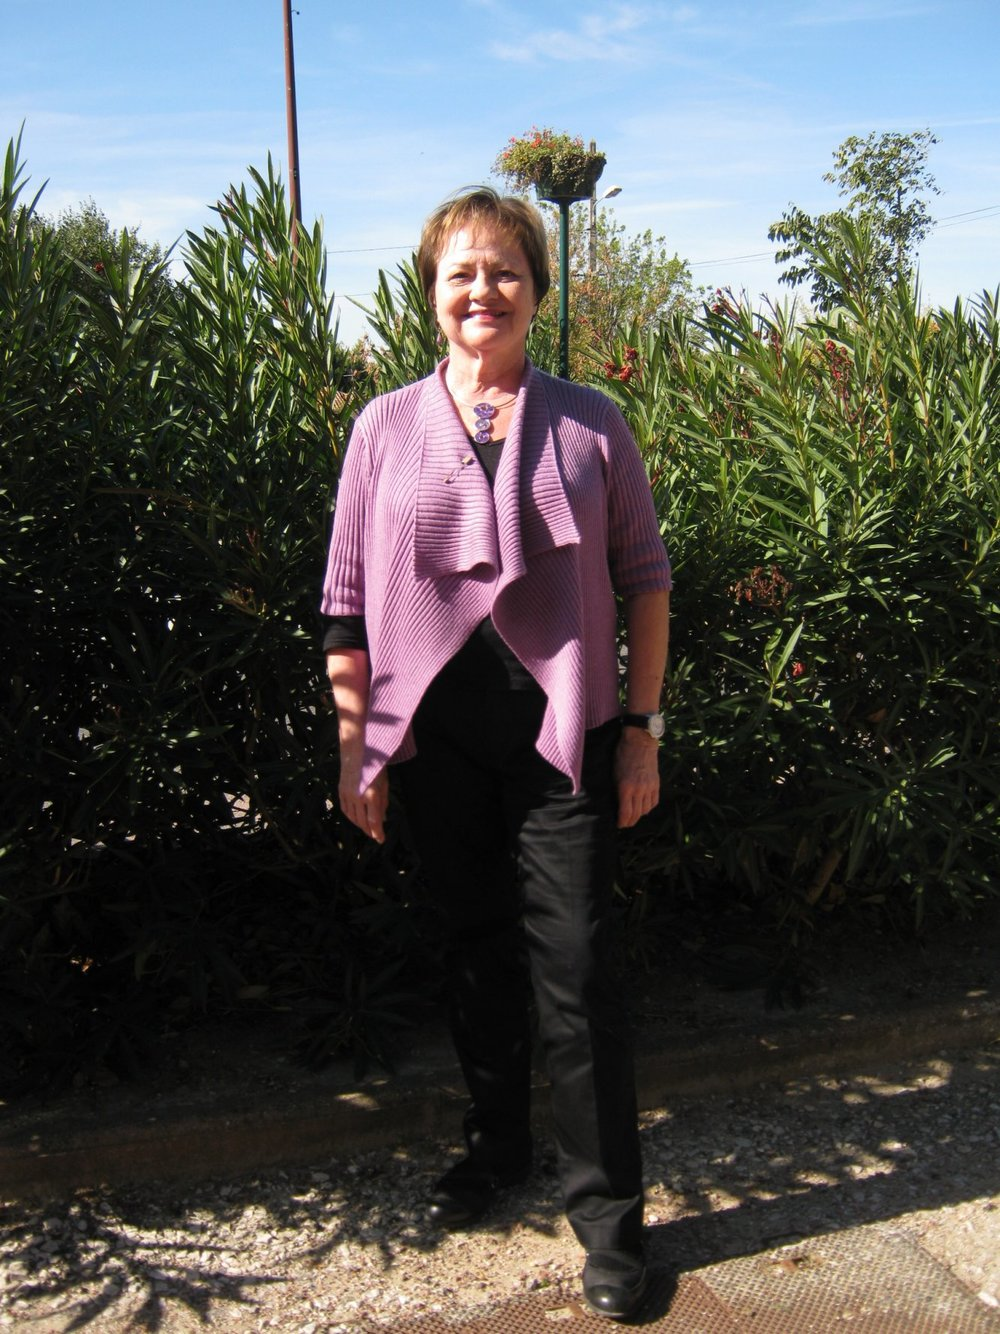 SHARON - Hospitality coordinator. With more than a decade of experience in the hospitality industry to round off a career in tech, Sharon is on hand to coordinate any parts of your stay that are not covered by Sylviane, such as facilitating your visit, arranging winery visits and other activities in anticipation of your stay.